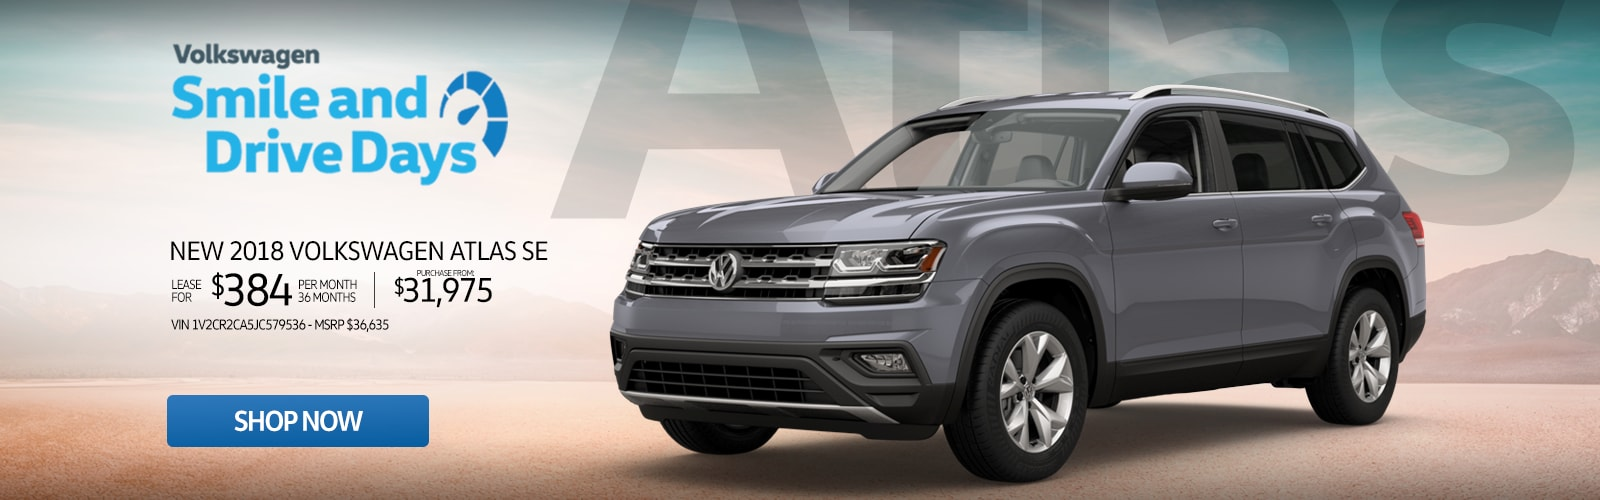 New 2018 Volkswagen Atlas SE Lease For Just $384 Or Purchase From $31,975 at Larry H. Miller Volkswagen Avondale